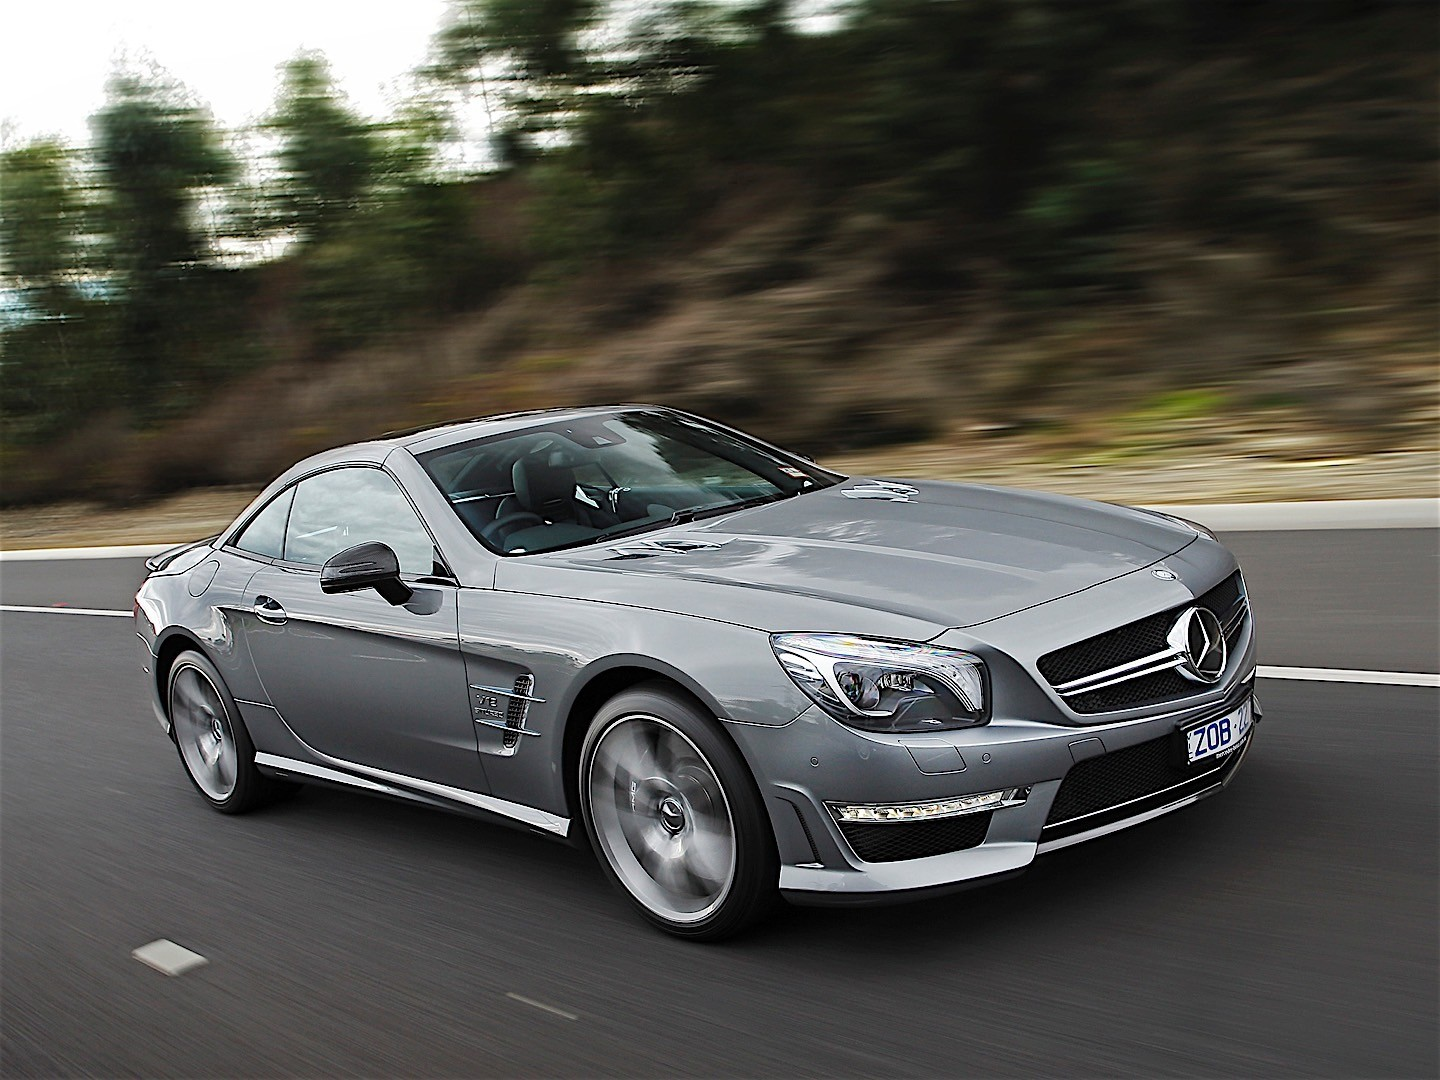 Mercedes benz sl 65 amg r231 specs 2012 2013 2014 for Mercedes benz car picture gallery